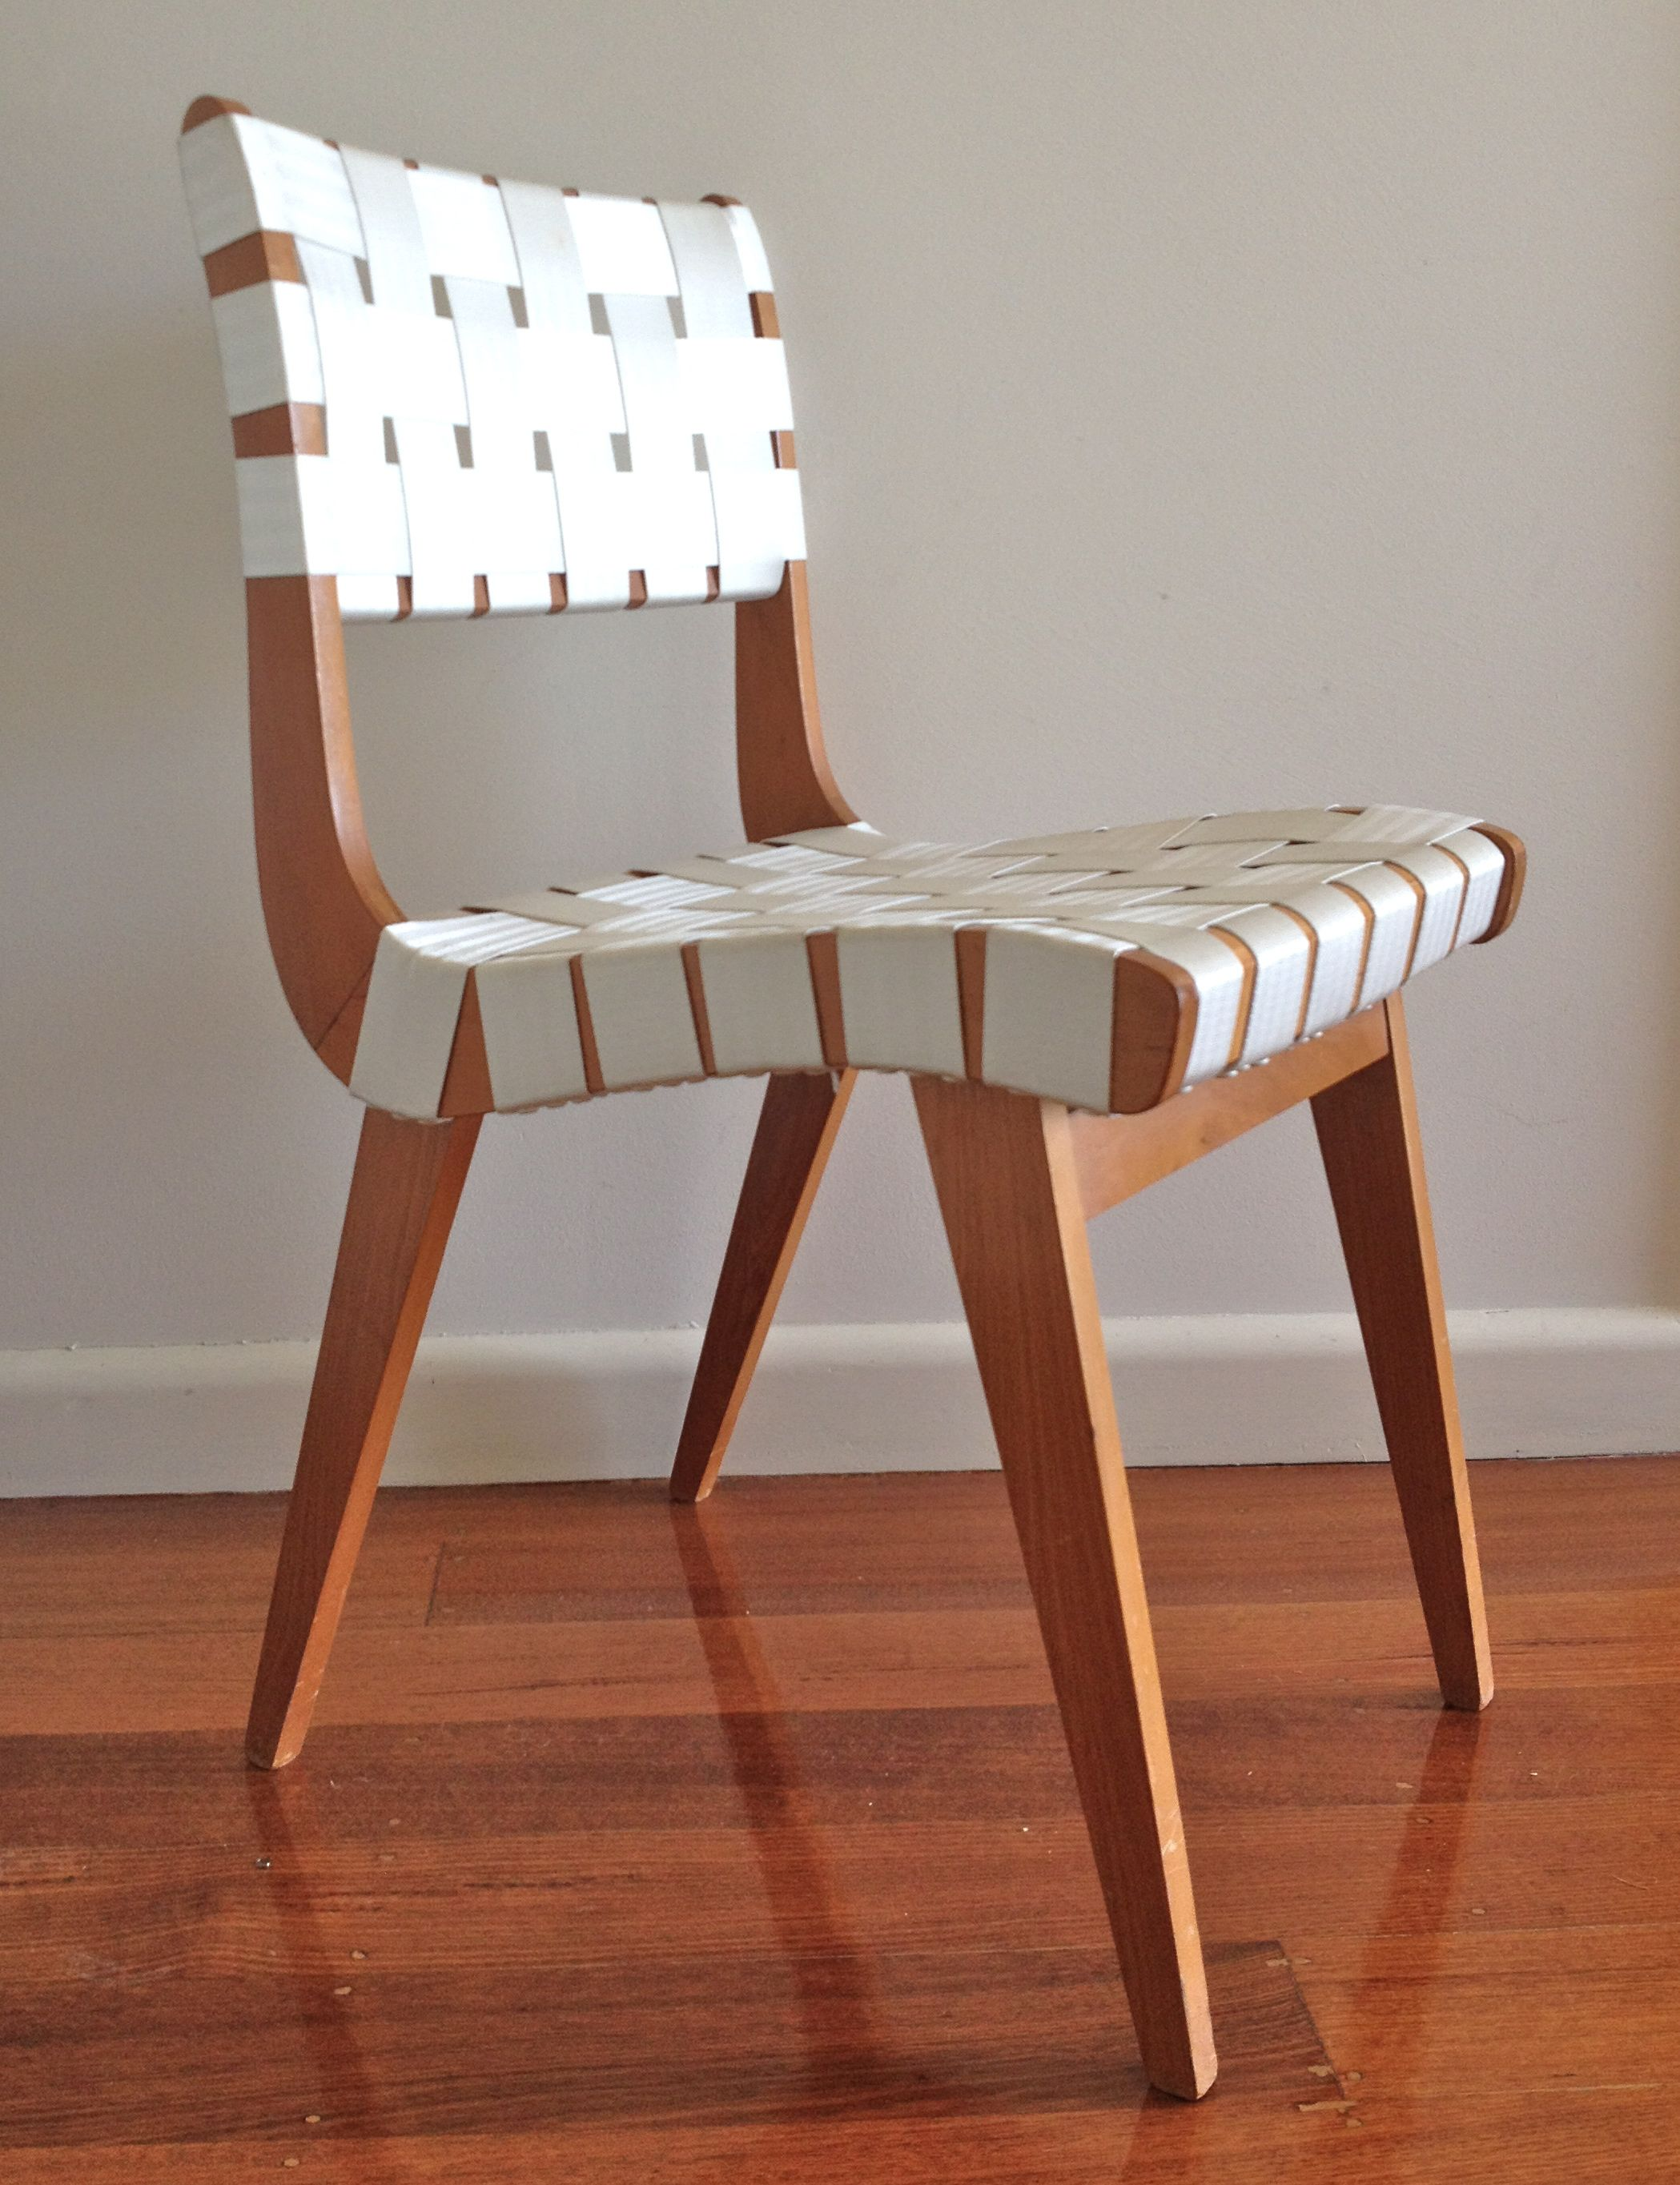 Snelling dining chair.. made by Functional Products Sydney 1940-50...rewebbed approx.10 years ago...SOLD & Snelling dining chair.. made by Functional Products Sydney 1940-50 ...